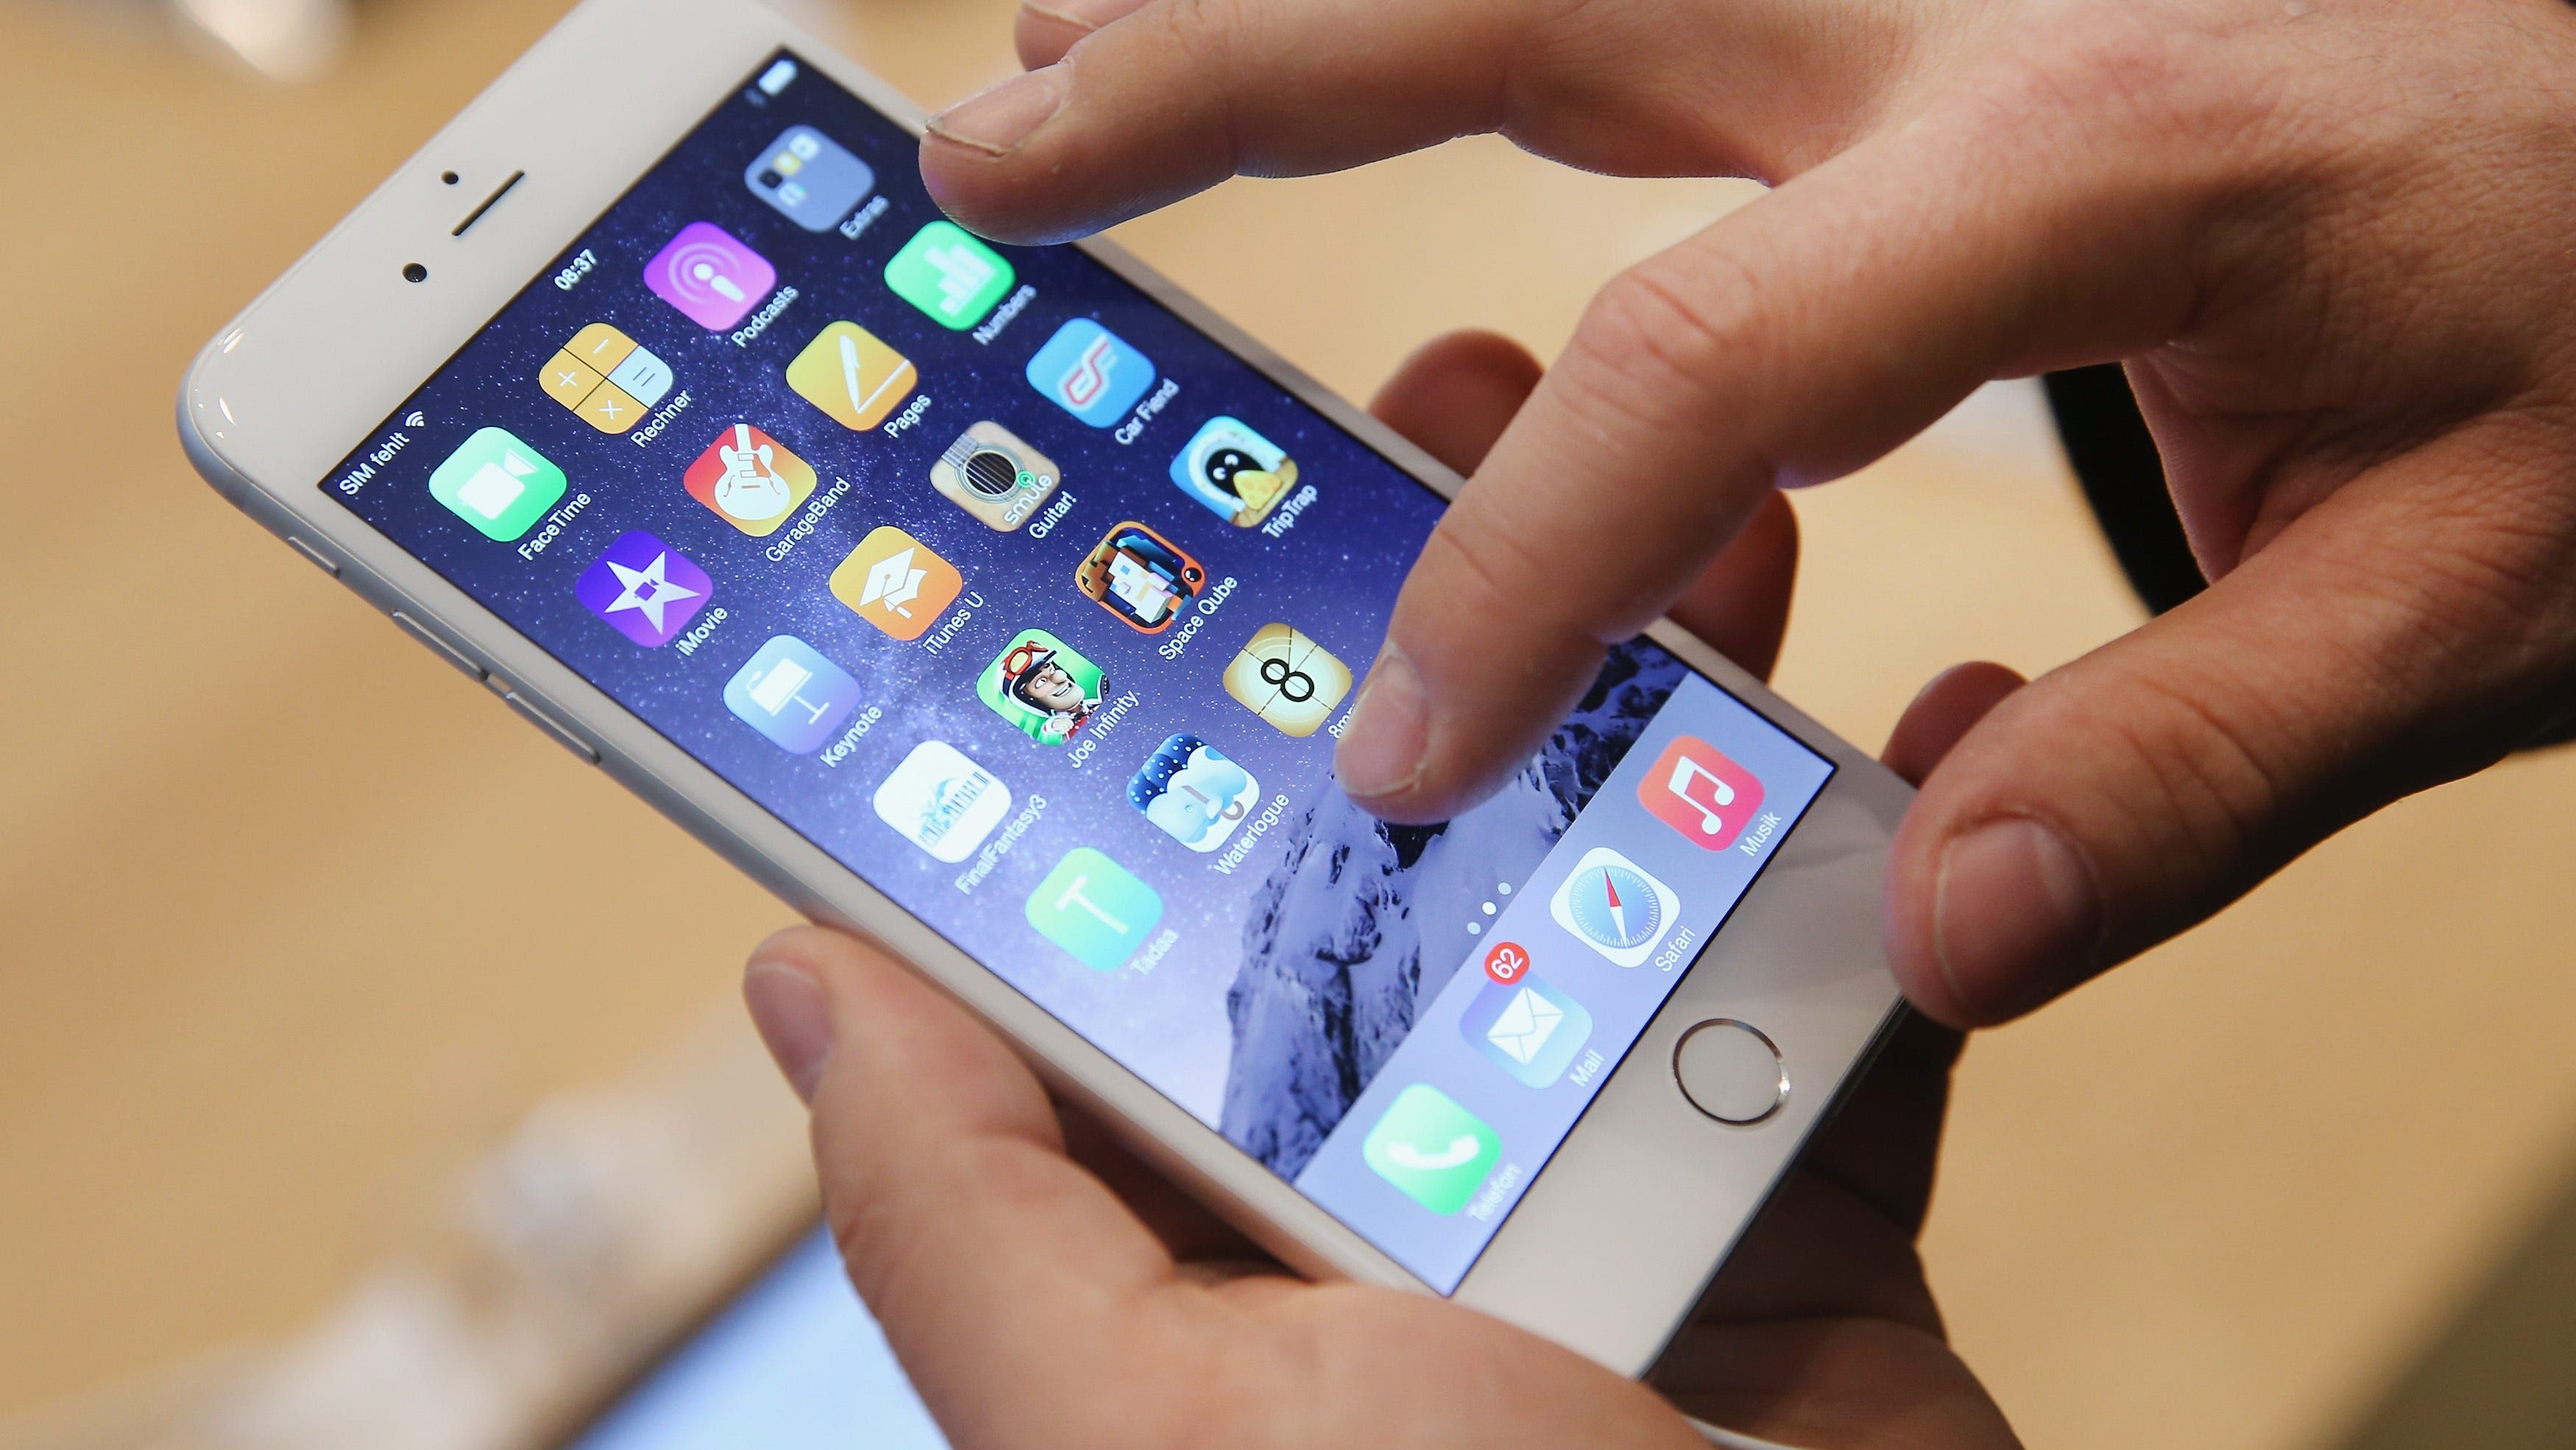 Goodbye to Apple's iPhone 6. So now what should I buy as a